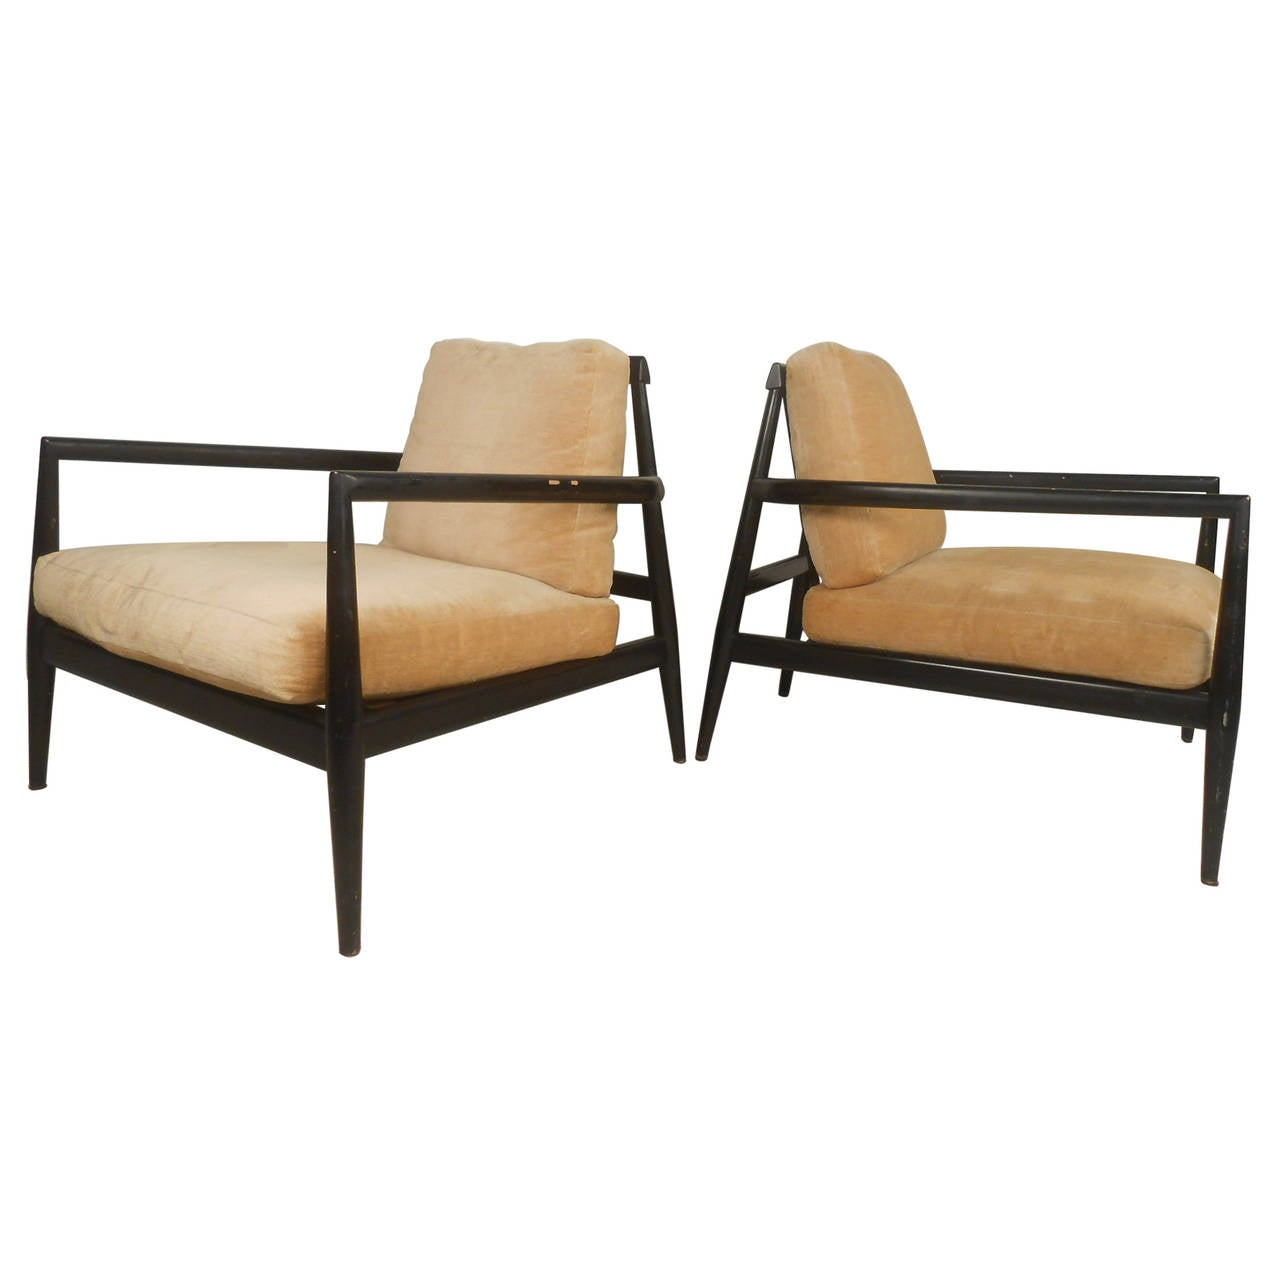 Pair Edmond J. Spence Urban-Aire Lounge Chairs